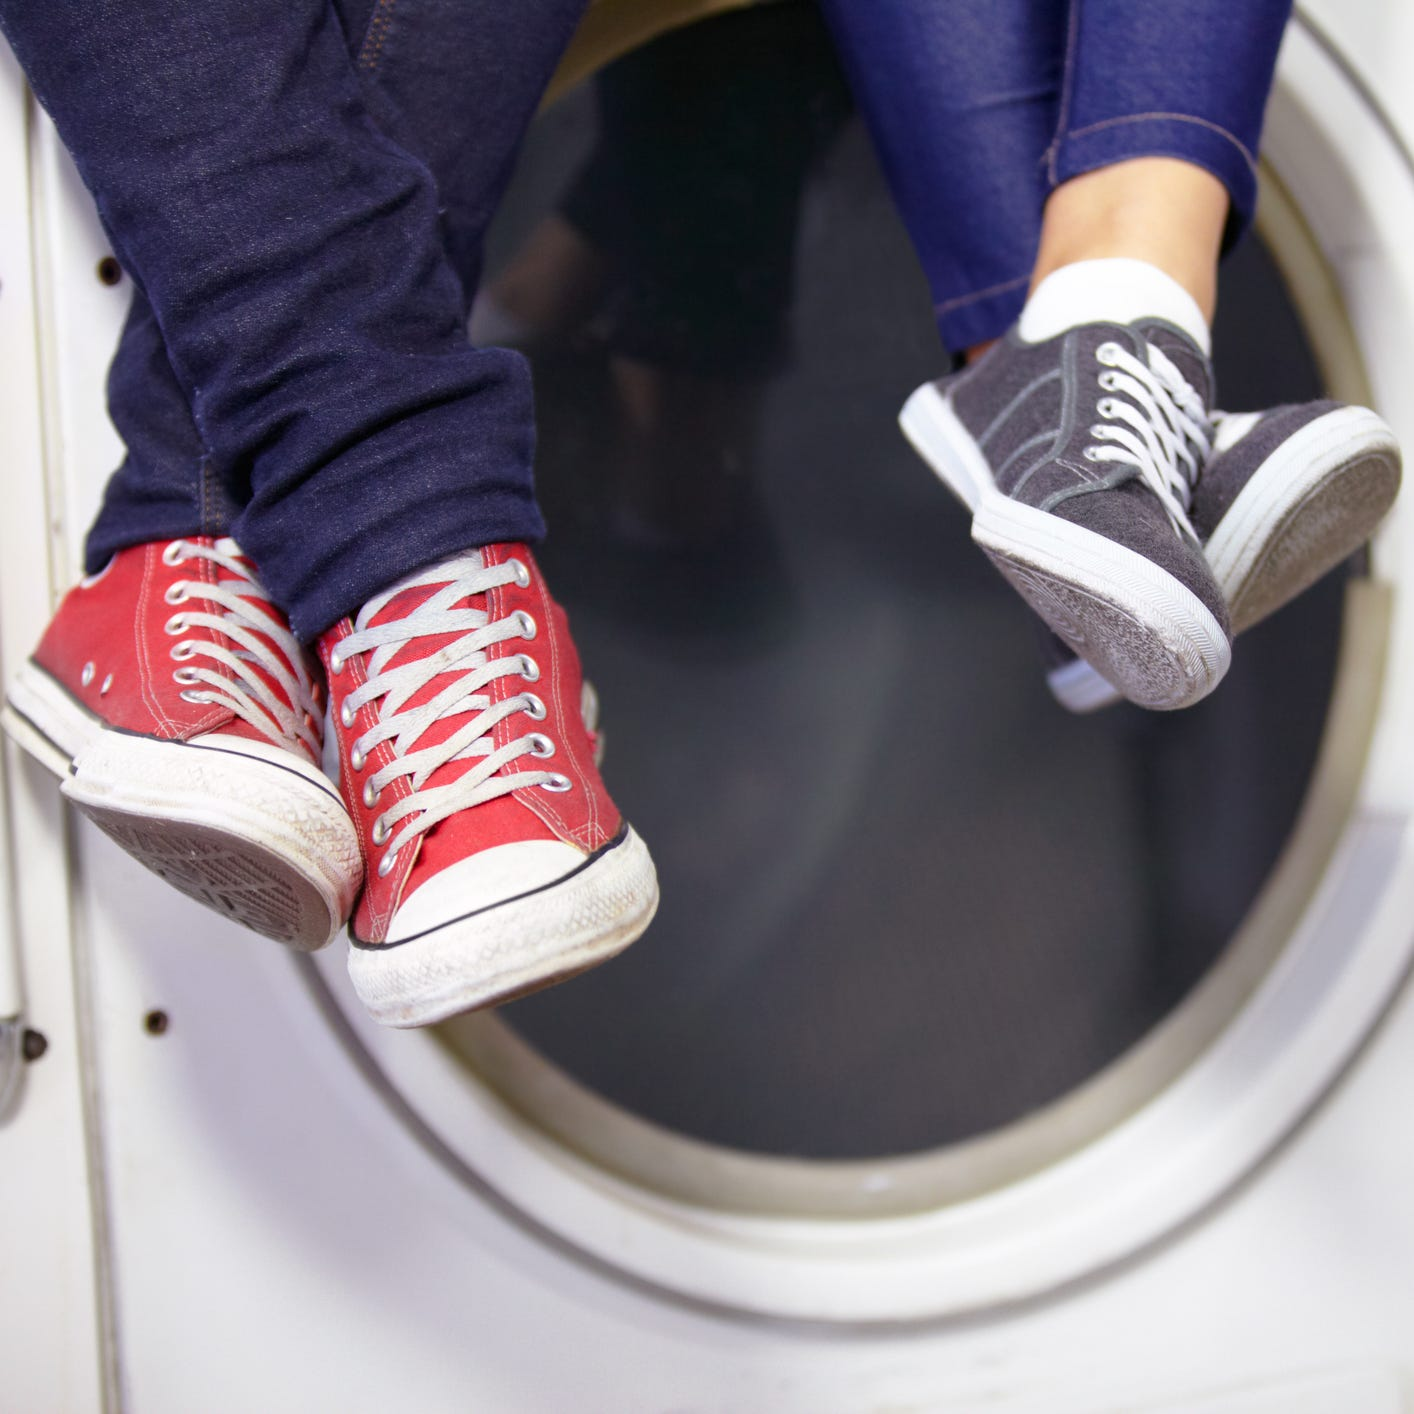 A New Jersey principal is putting an end to bullying and absenteeism in his high school by providing students access to a laundry room, for use after school.